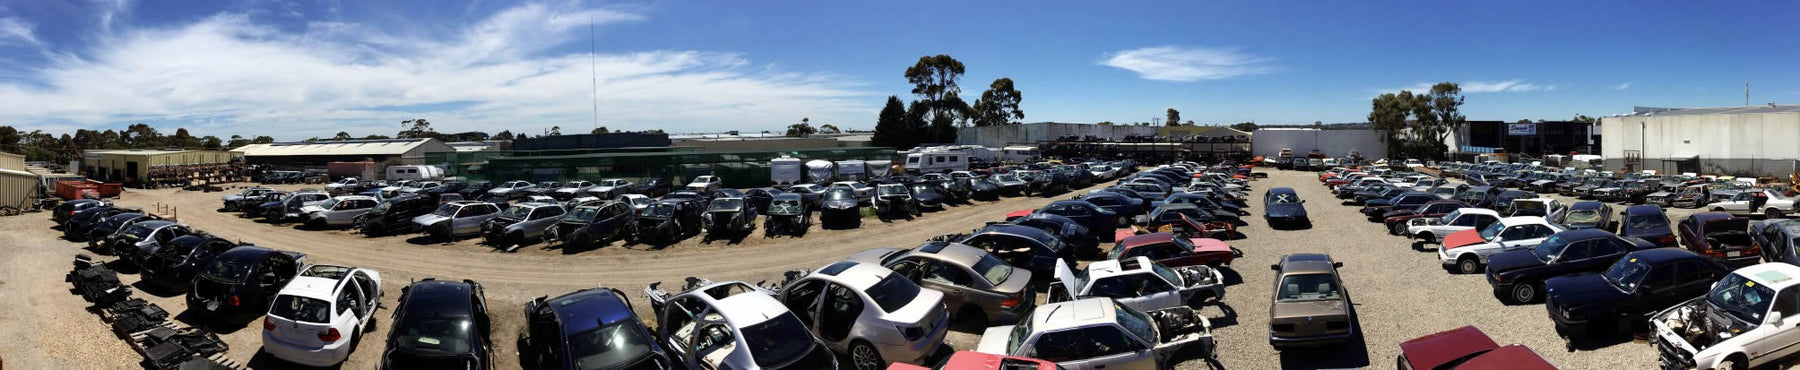 BMW Wreckers with over 2,700 so far